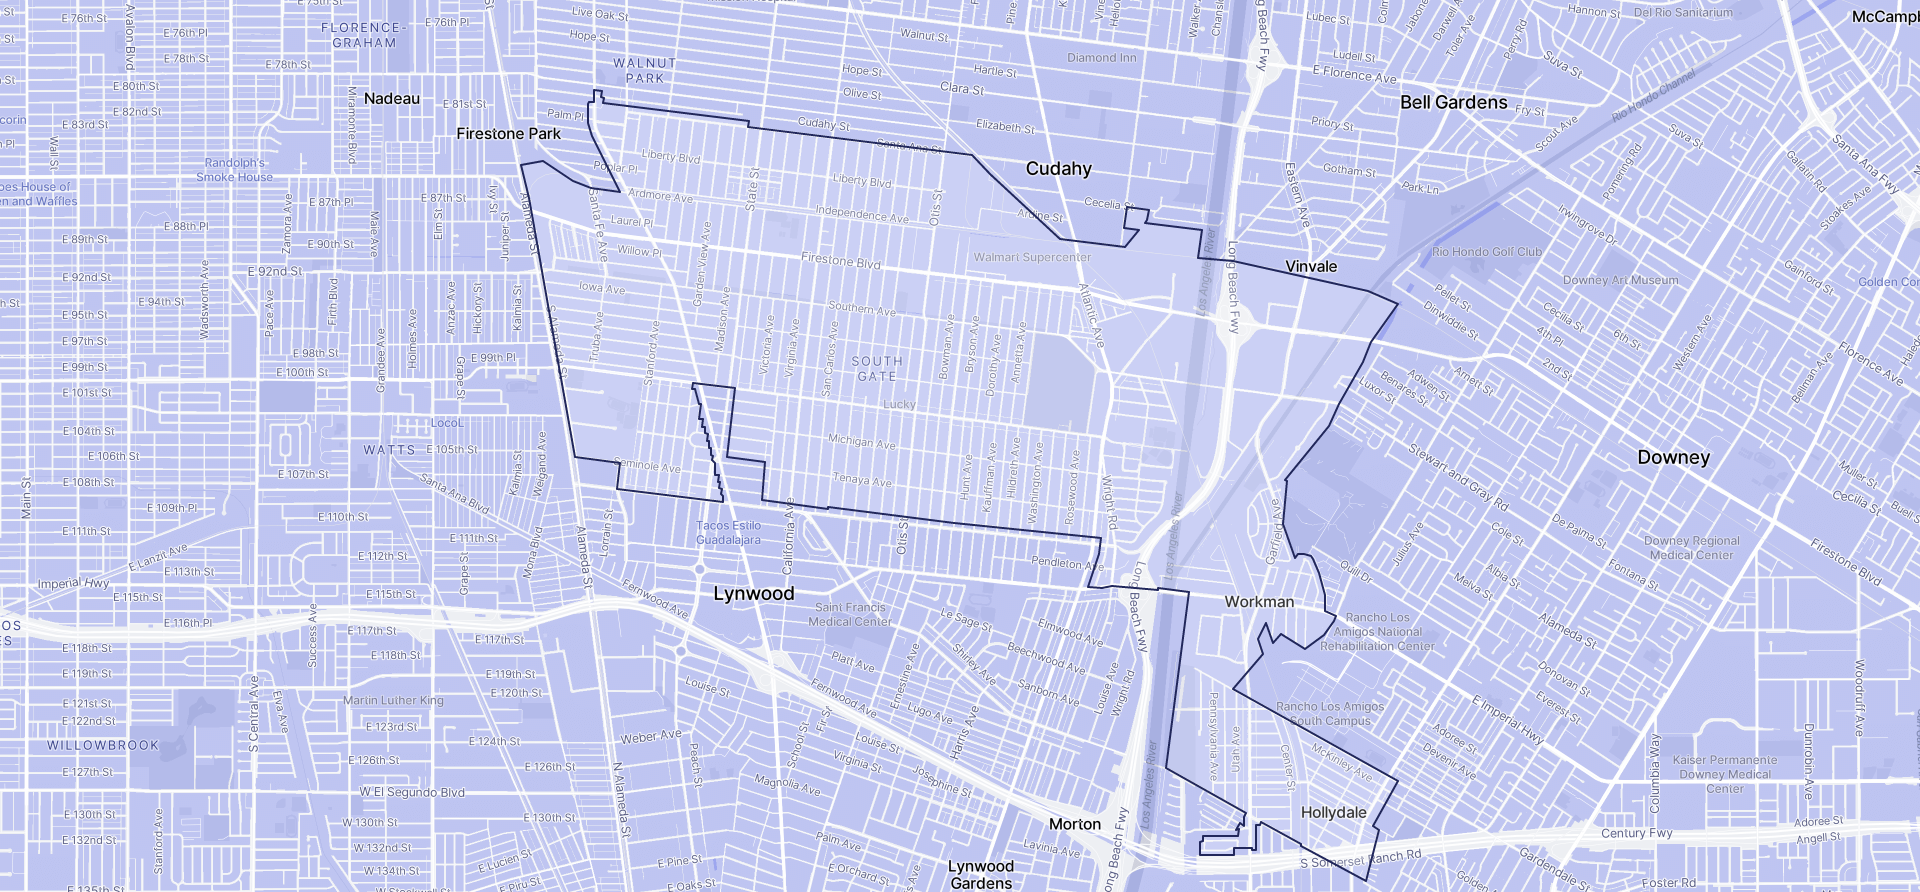 Image of South Gate boundaries on a map.